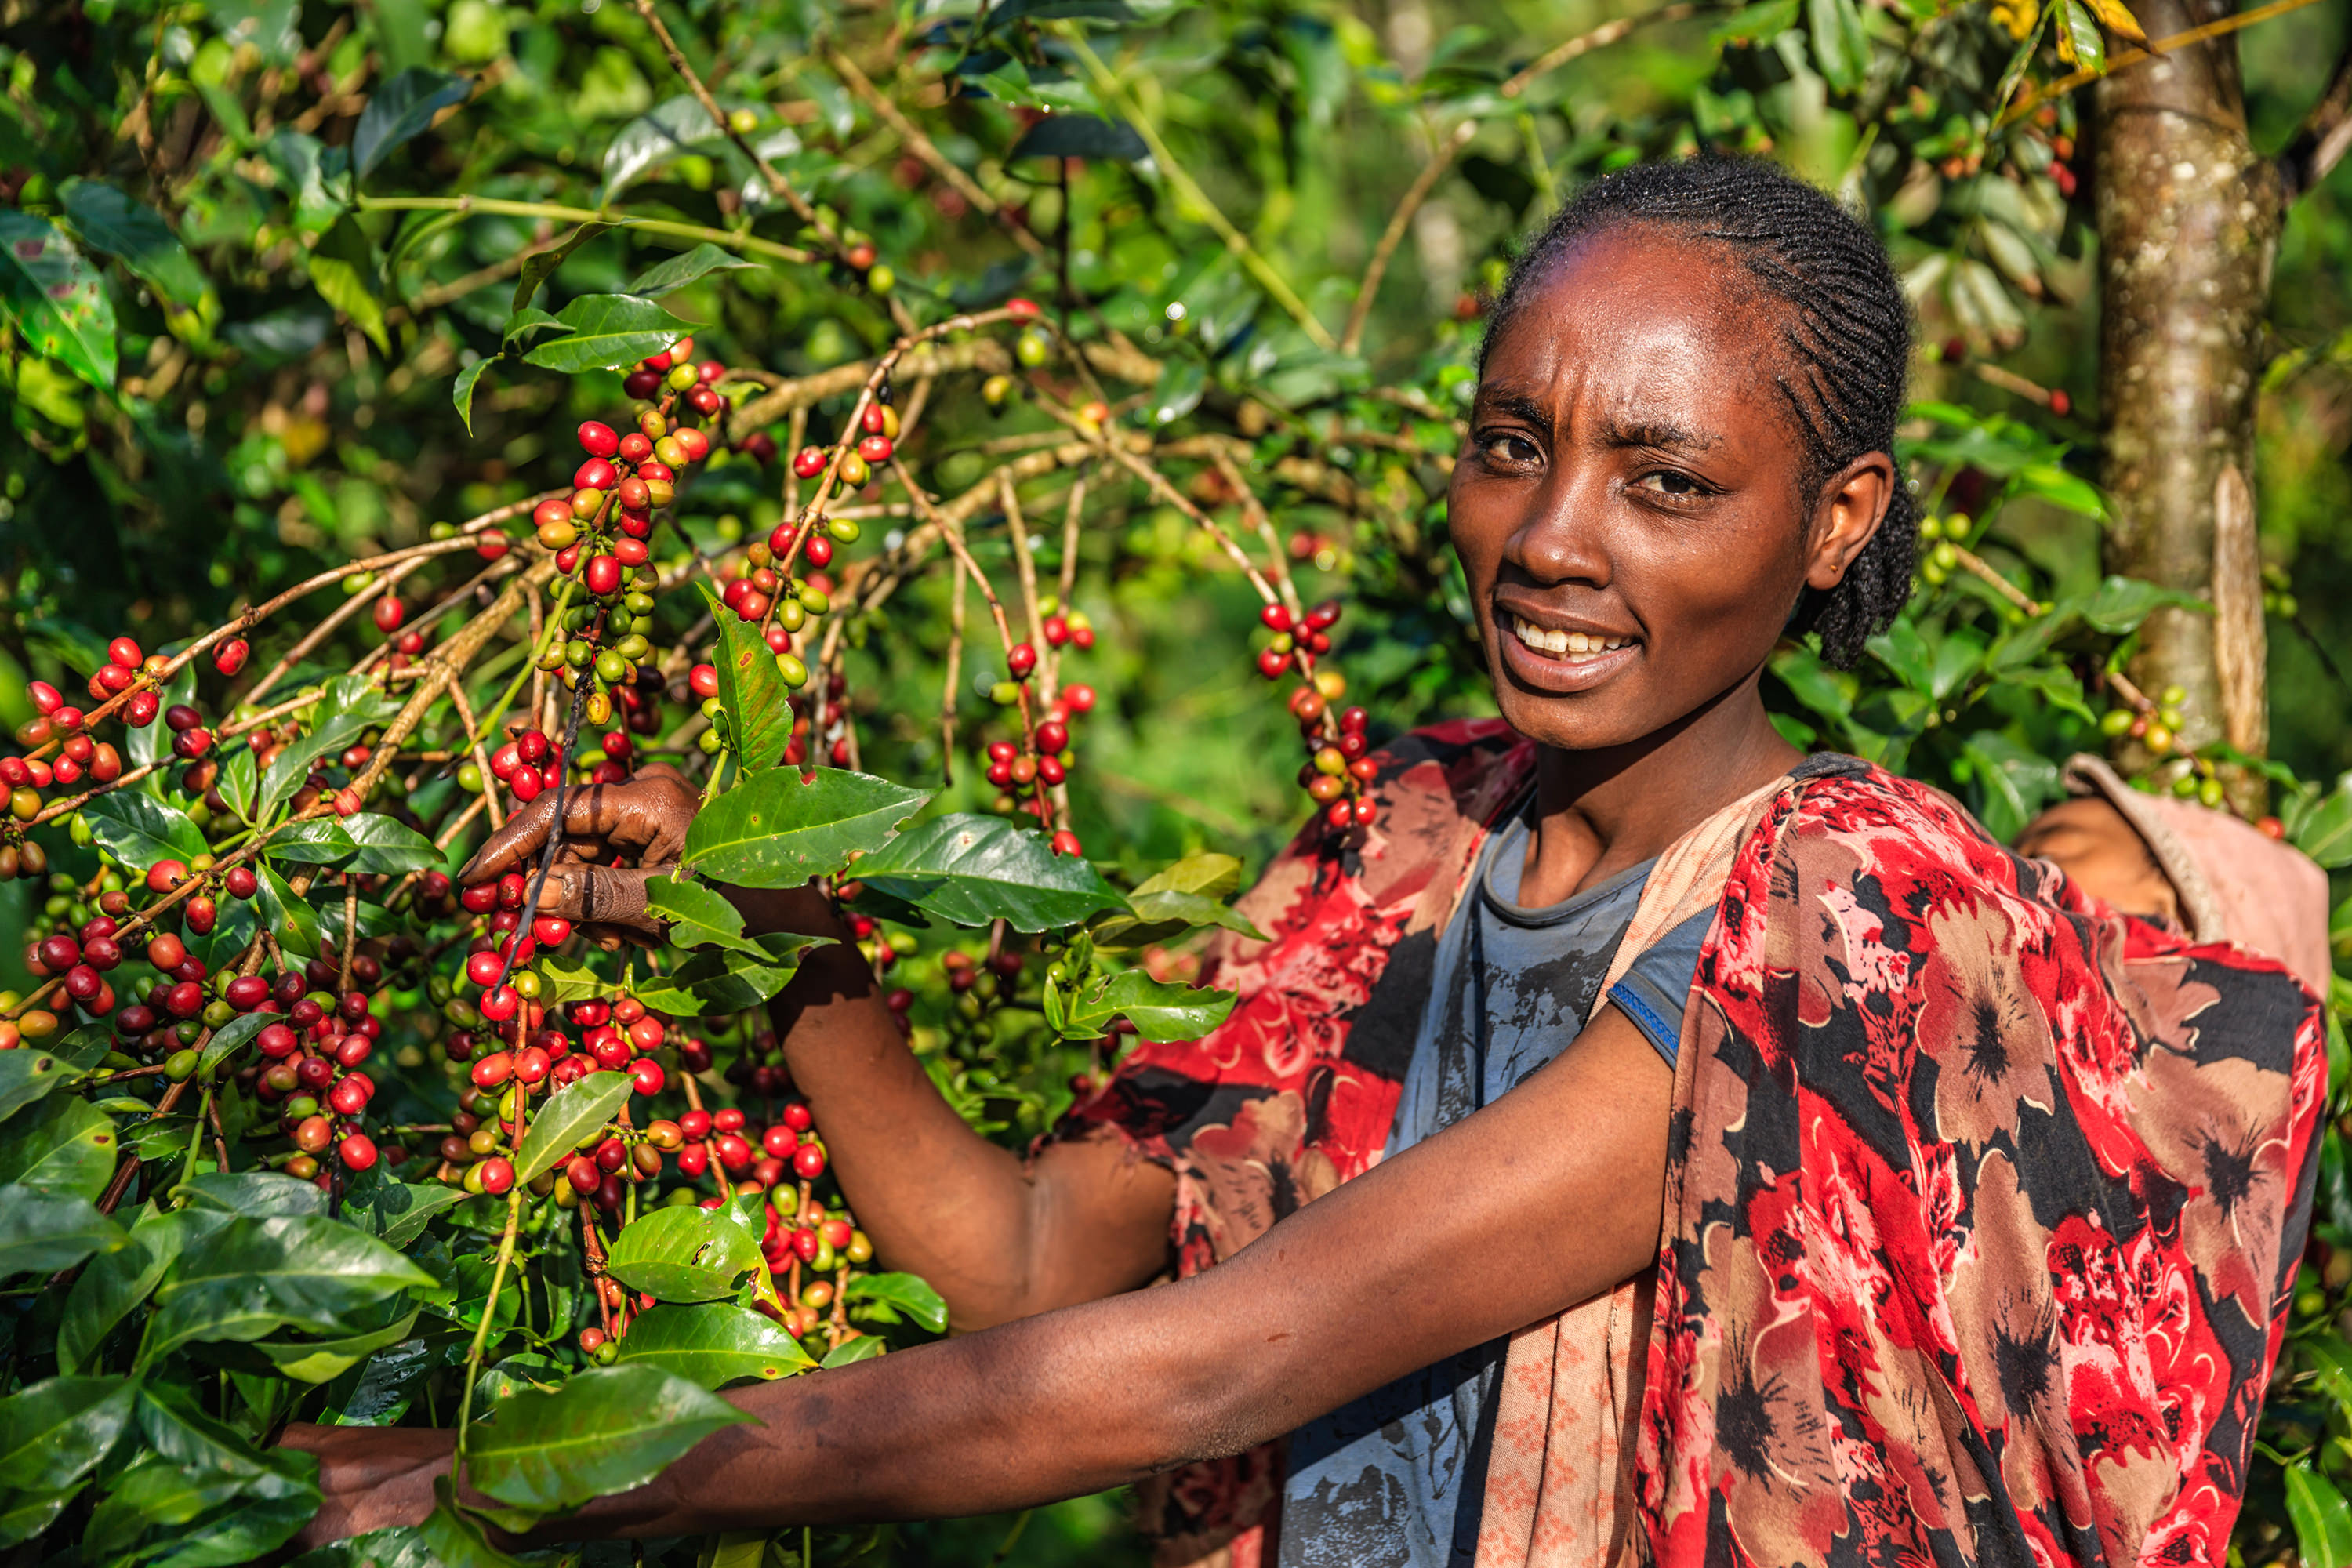 Fairtrade, Labour Markets and Women's Economic Empowerment in Ethiopia